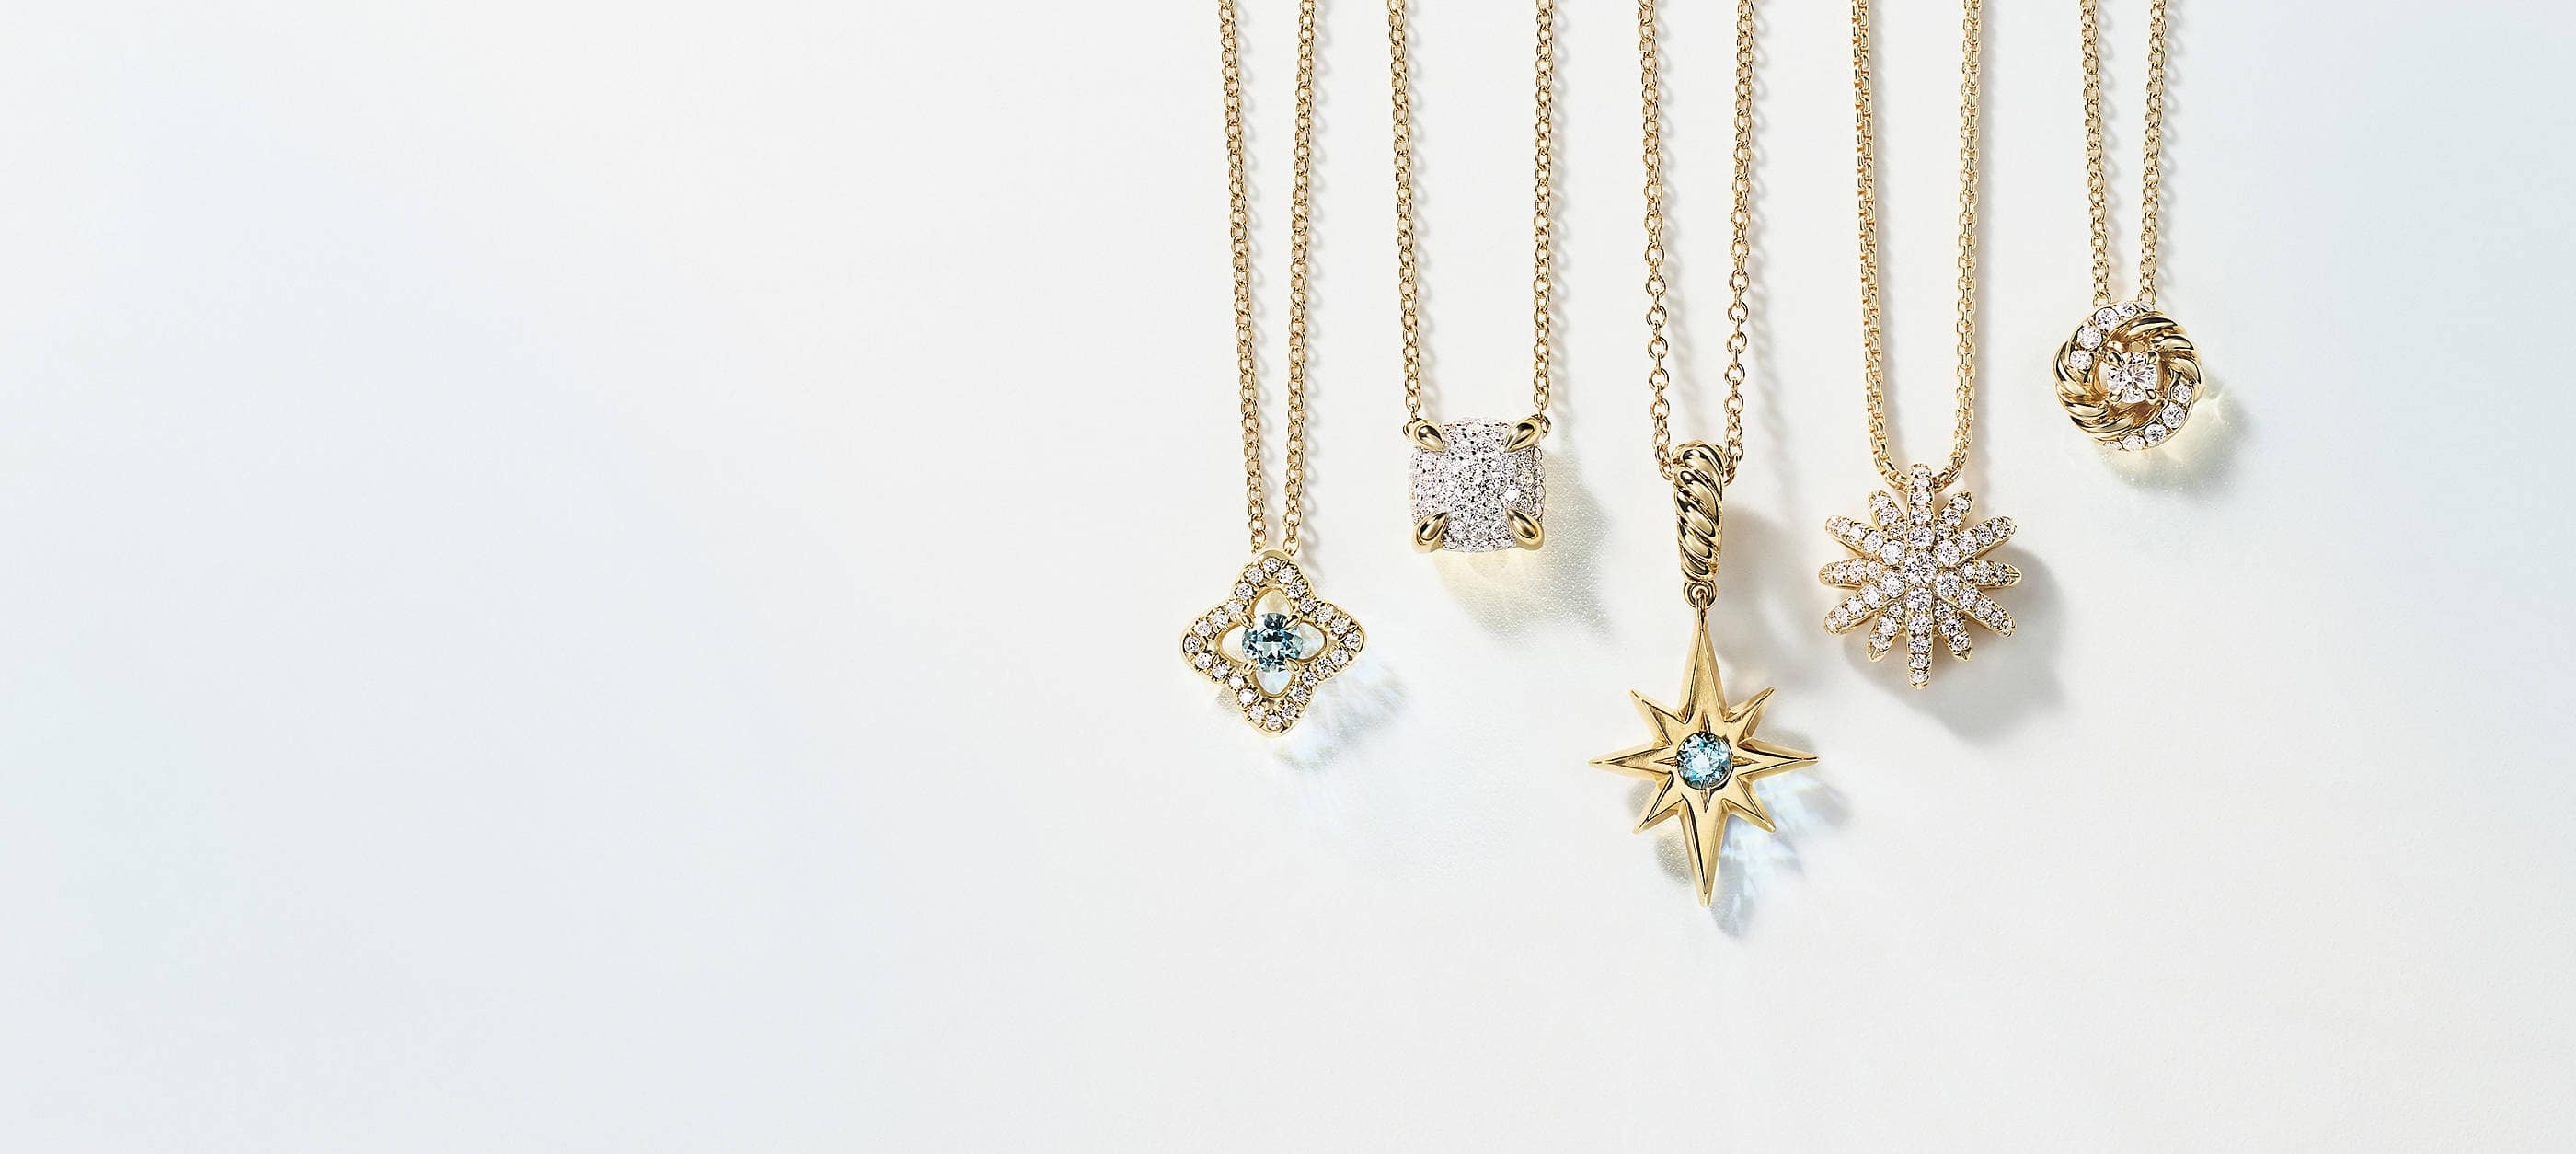 A horizontal row of five David Yurman charm necklaces hanging in front of a light blue and white background. The women's jewelry is crafted from 18K yellow gold with or without pavé diamonds and aquamarine center stones. The pendants come in various shapes such as a star, circle, cushion and quatrefoil.